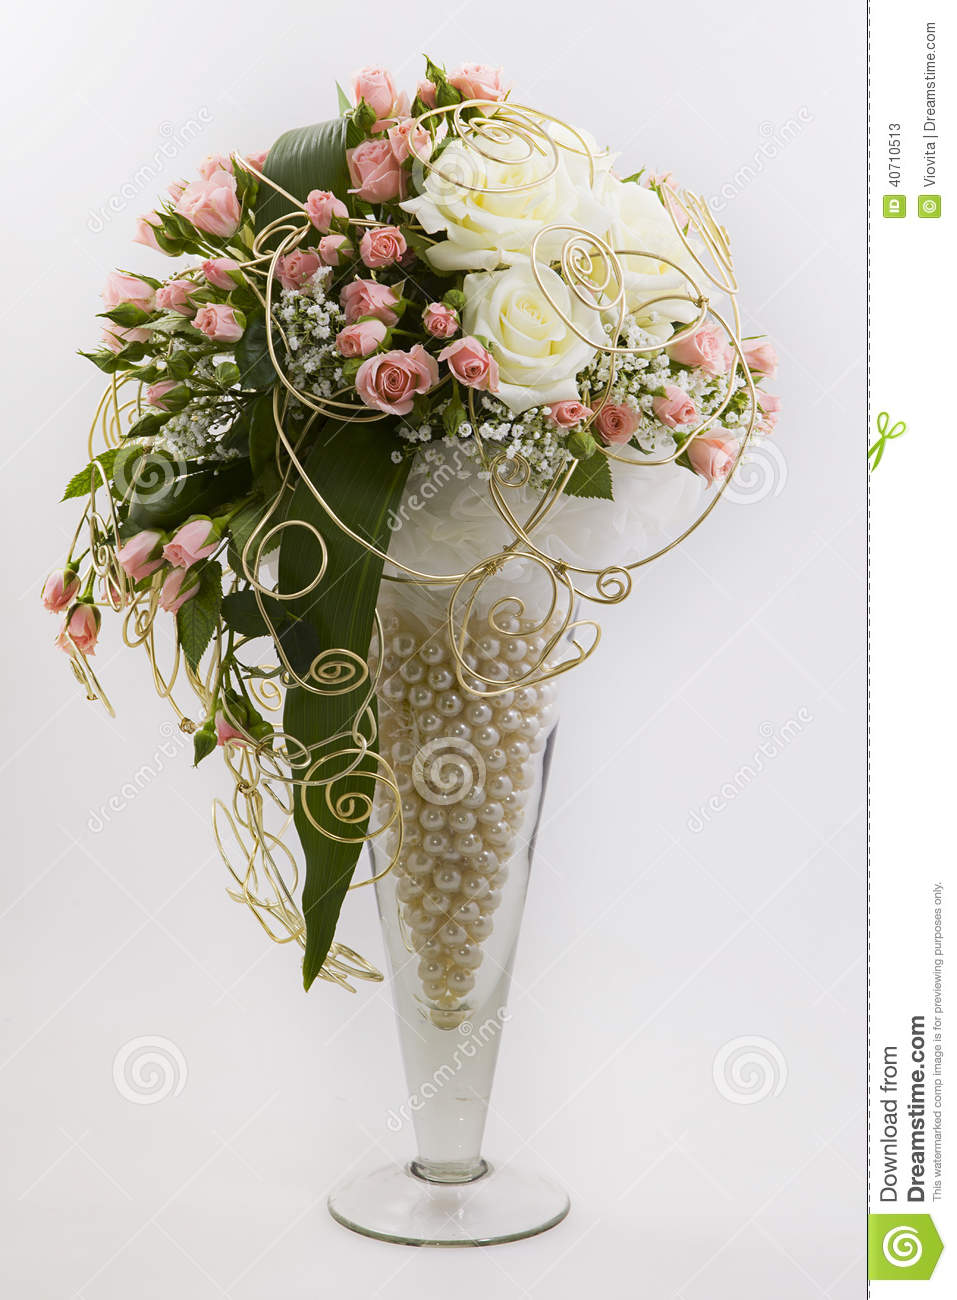 Floral Composition Stock Image Image Of Pink Flowers